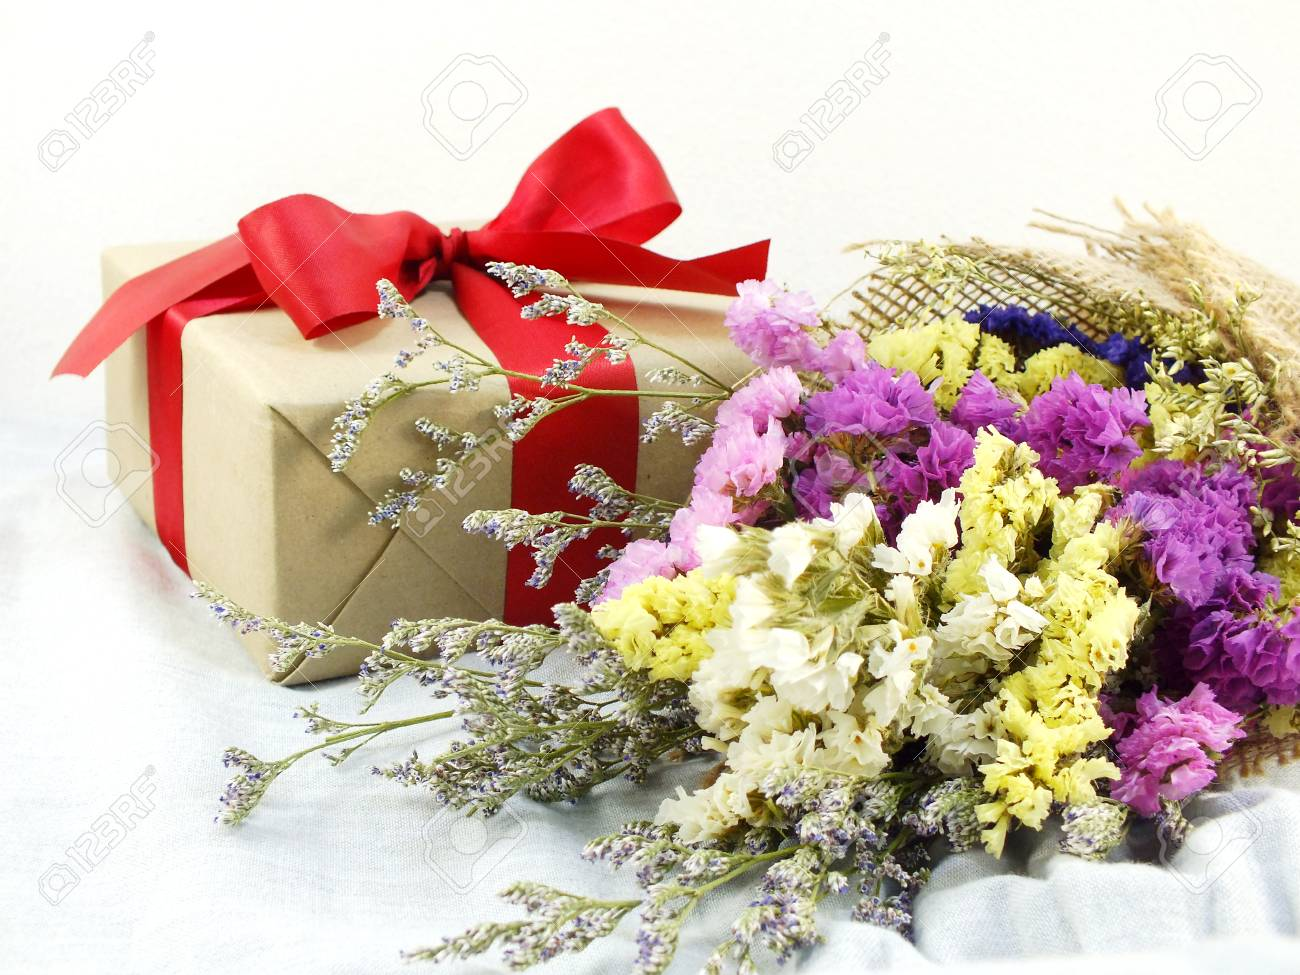 Craft Paper Gift Box With Ribbon Bow And Flower Bouquet With Stock